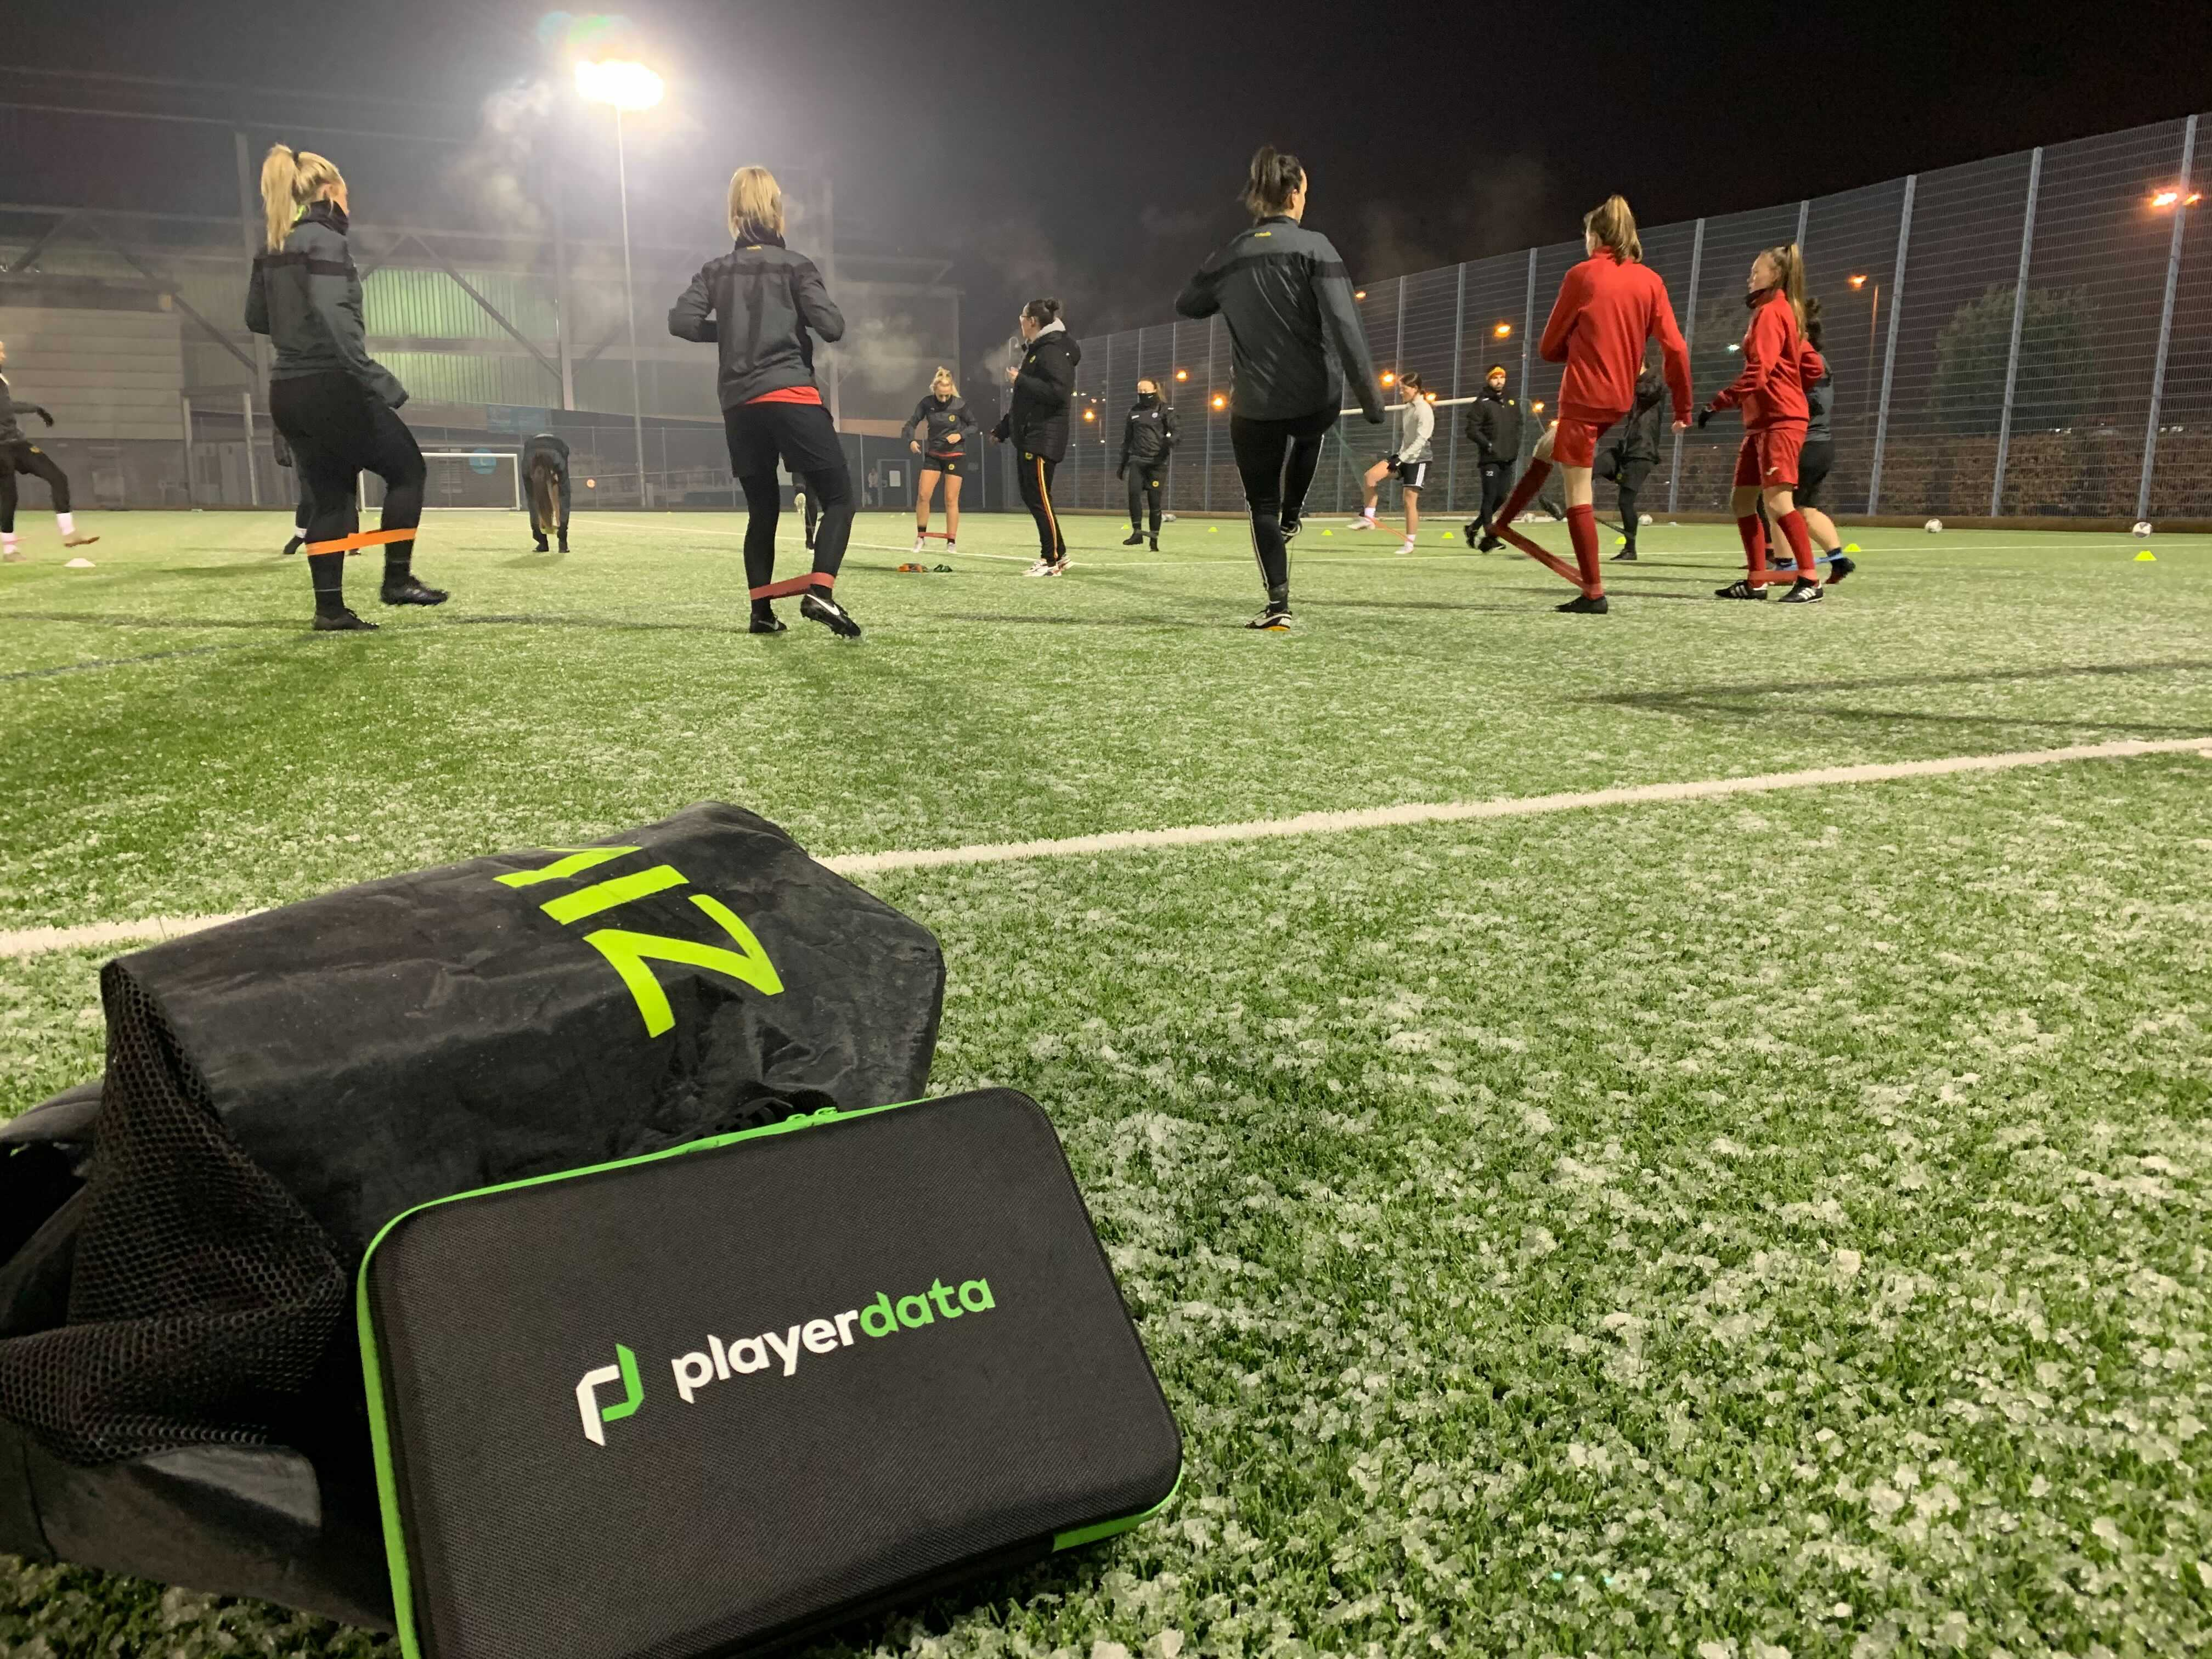 PlayerData product with people playing football behind